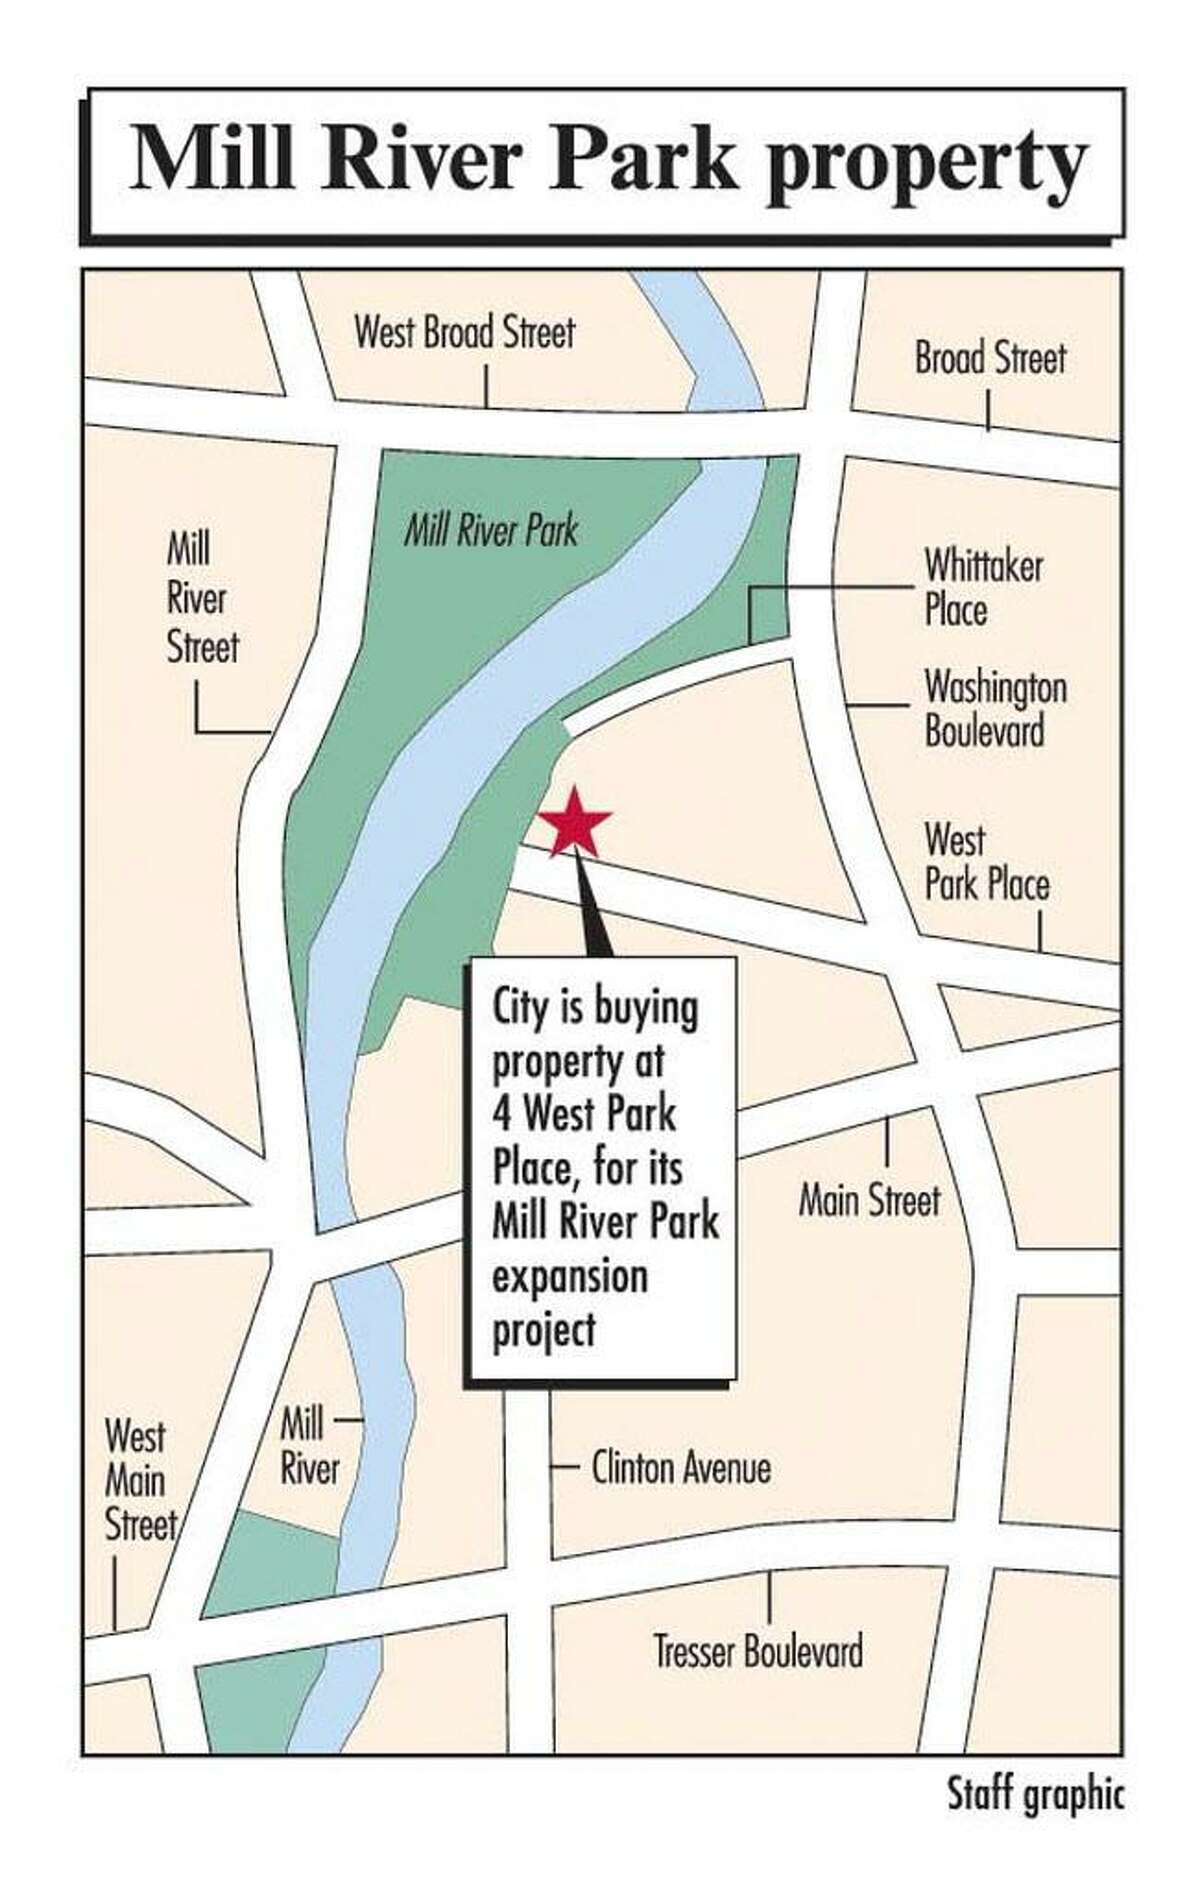 Staff locator map showing 4 West Park Place property to be sold for Mill River Park Plan. Story by Doug Dalena printed on Dec.1st, 2006.